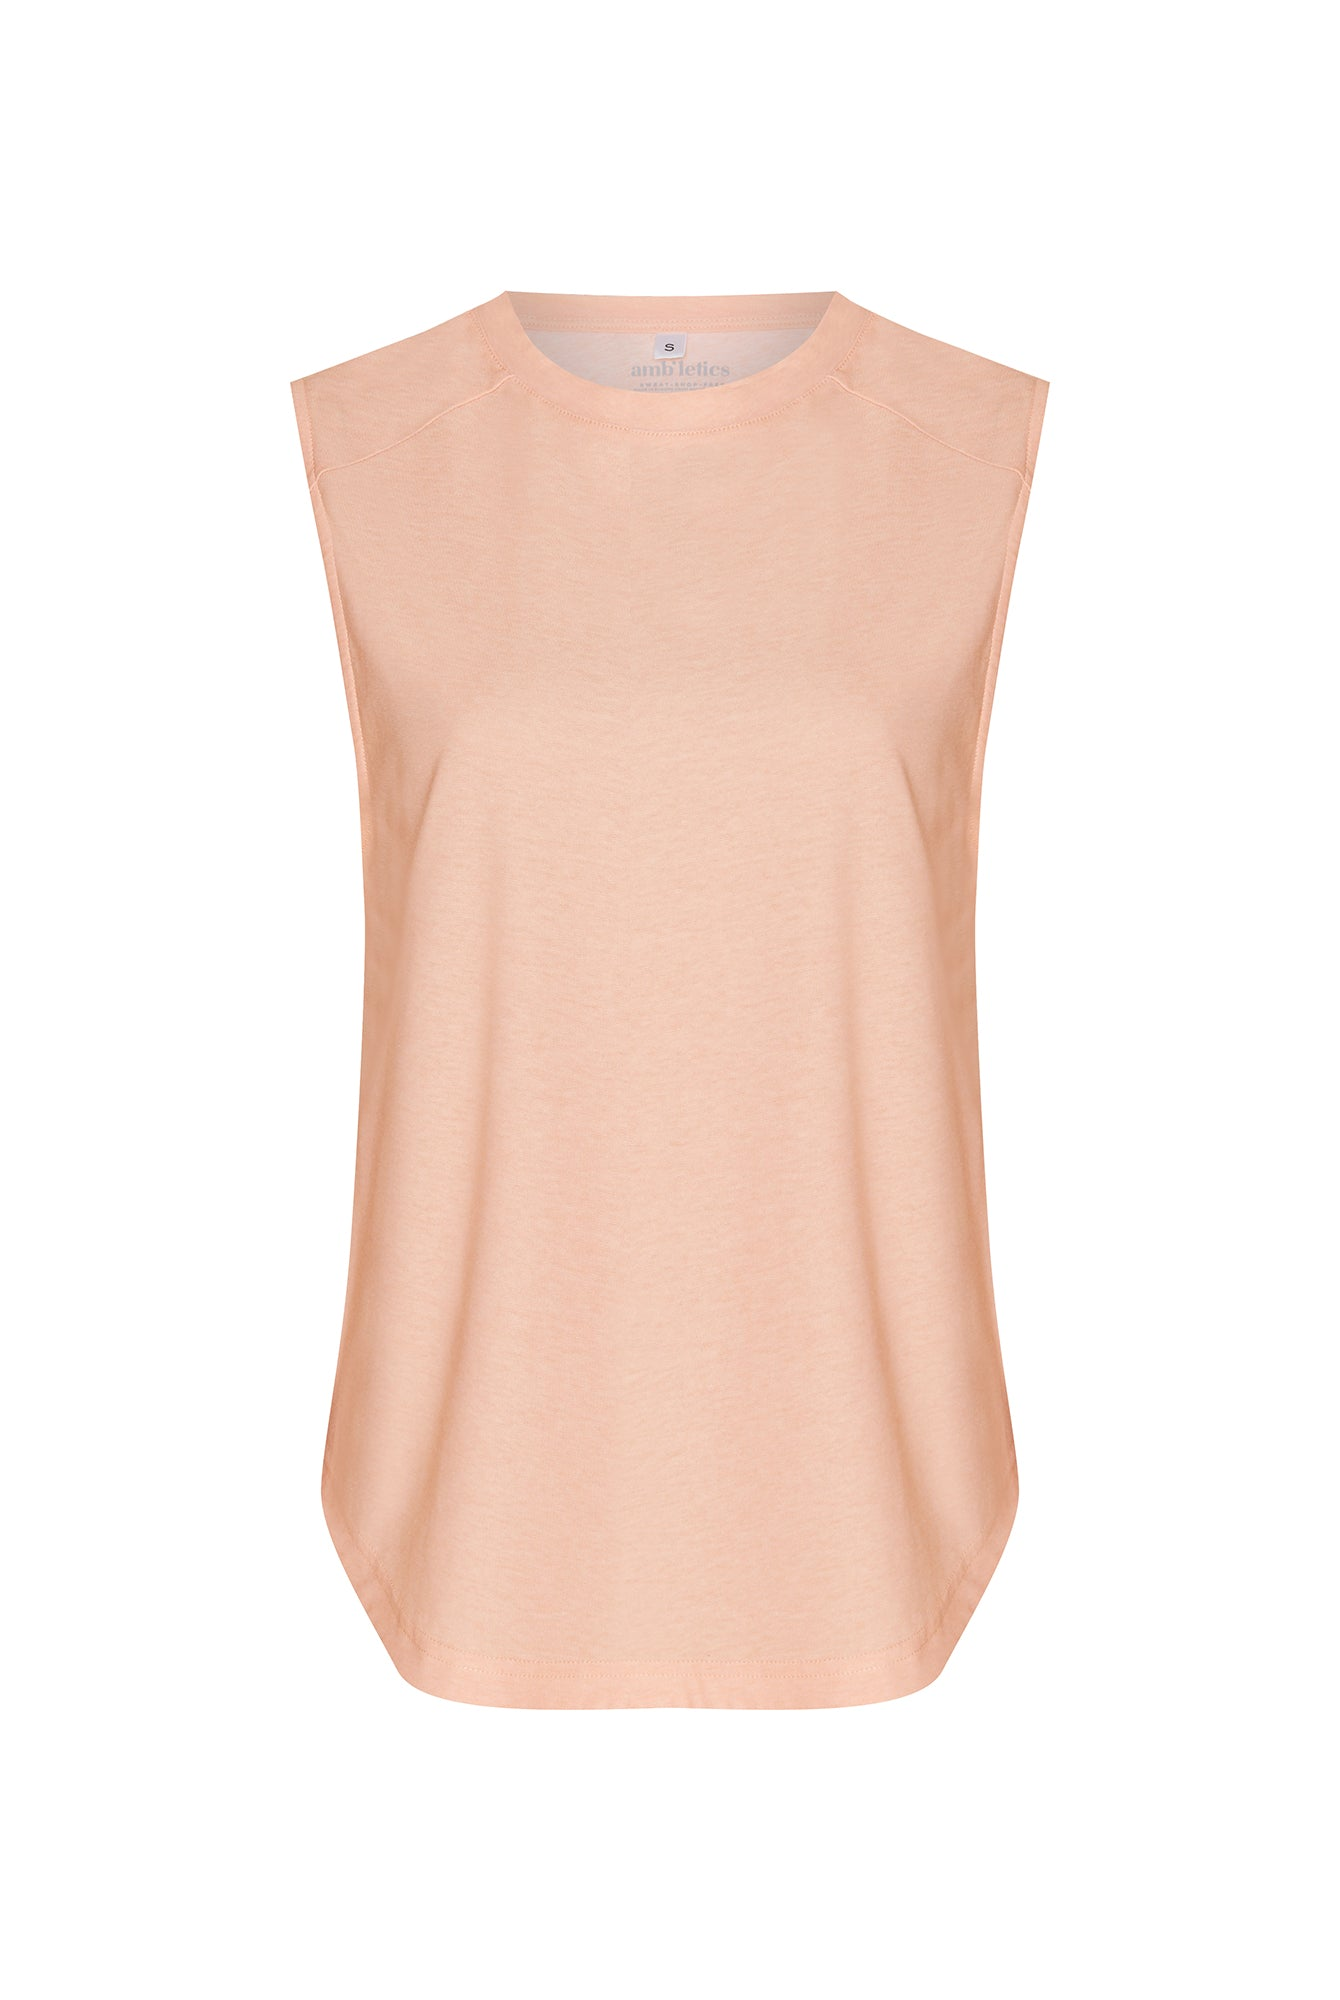 Pretty Peach Tank Top